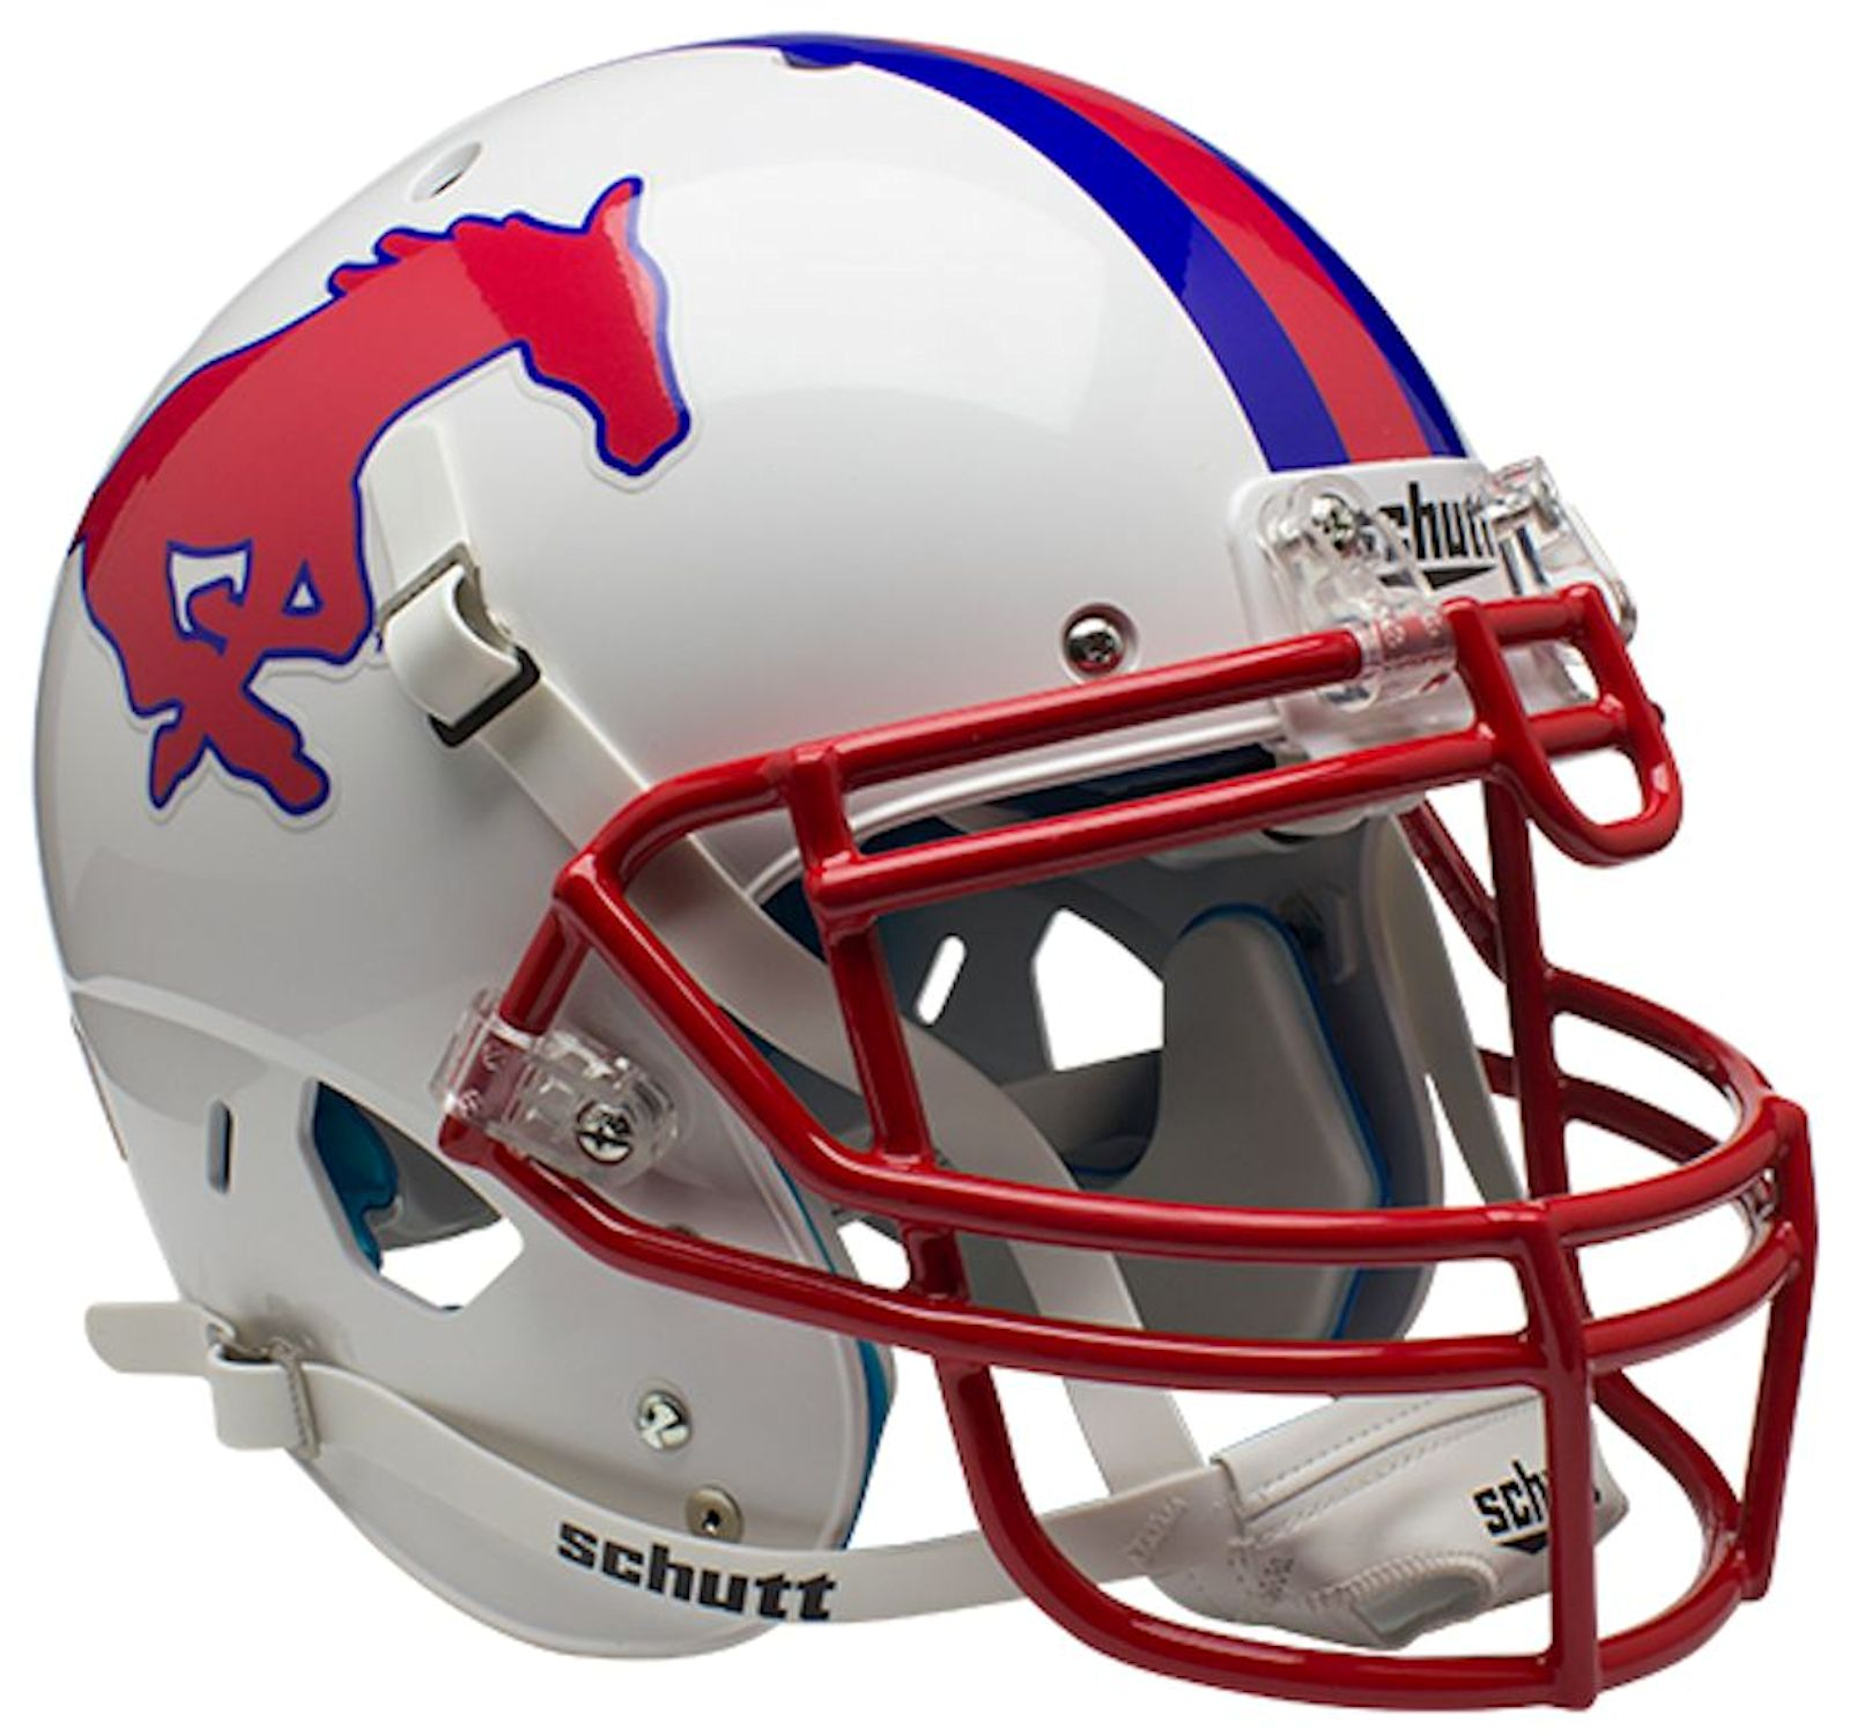 Southern Methodist (SMU) Mustangs Authentic College XP Football Helmet Schutt